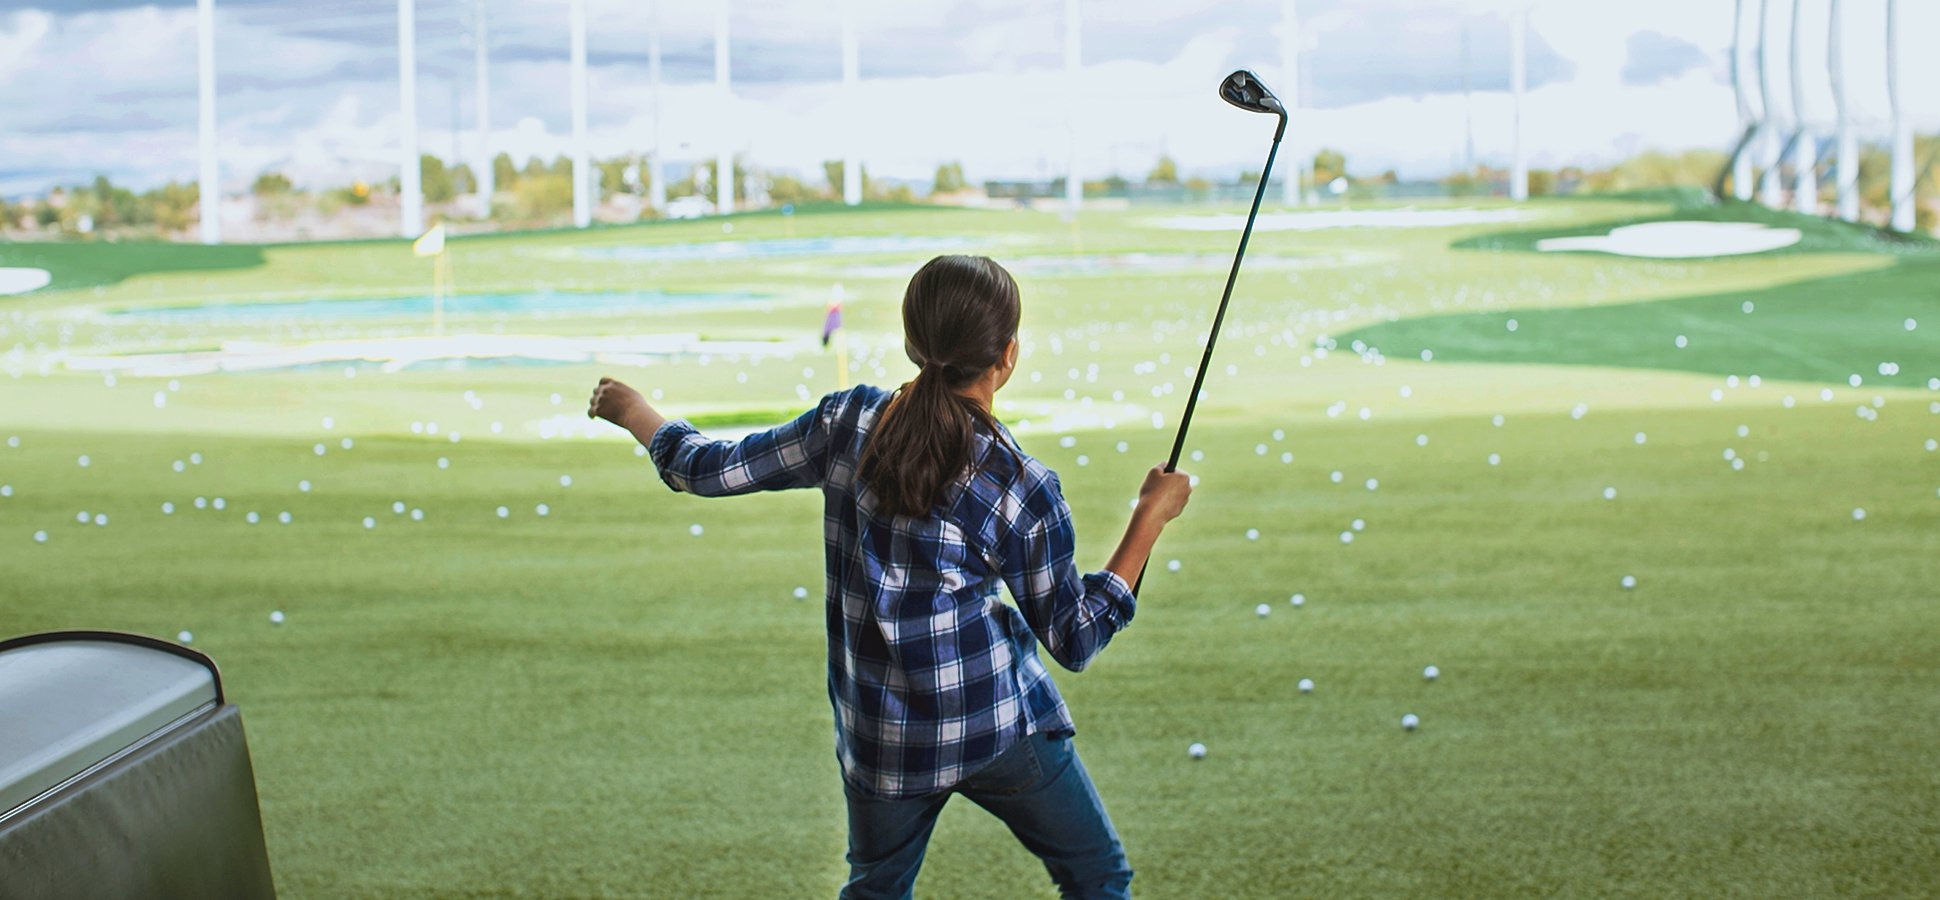 Forget WeWork. Topgolf Is Fast Becoming the Cool Place to Do Business